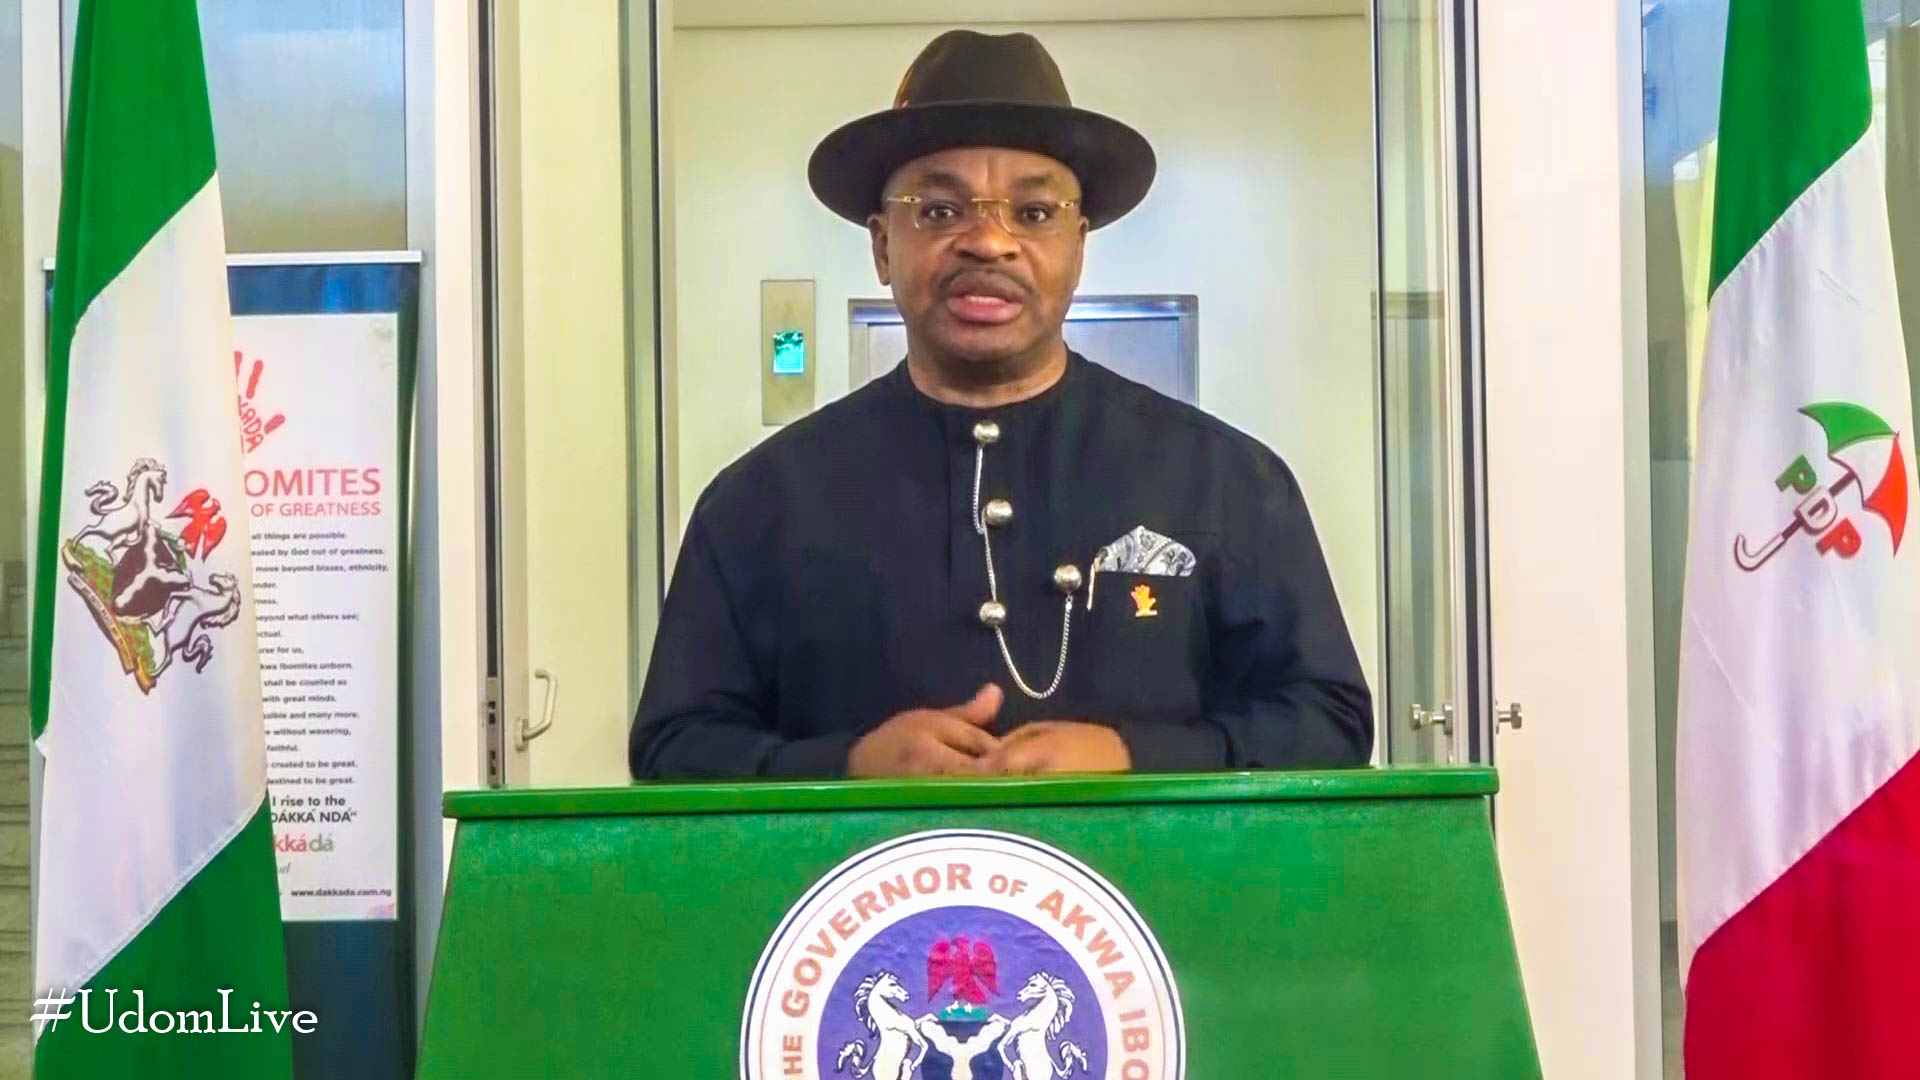 Broadcast by His Excellency, Mr. Udom Emmanuel, Governor, Akwa Ibom State on the Occasion Of The Fifth Anniversary of His Inauguration.